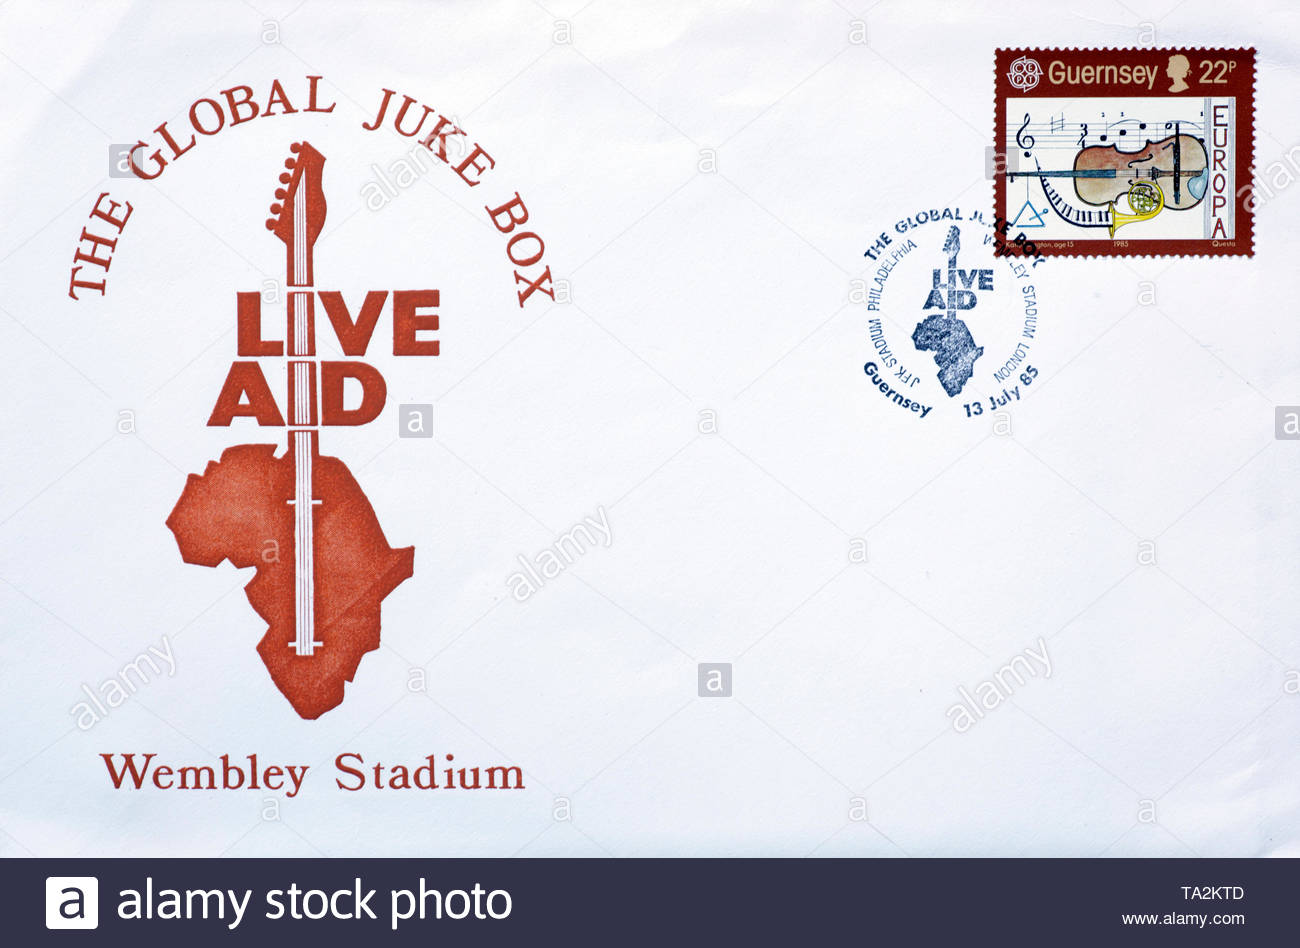 Post Office First Day Cover 1985, Live Aid Wembley Stadium - Stock Image